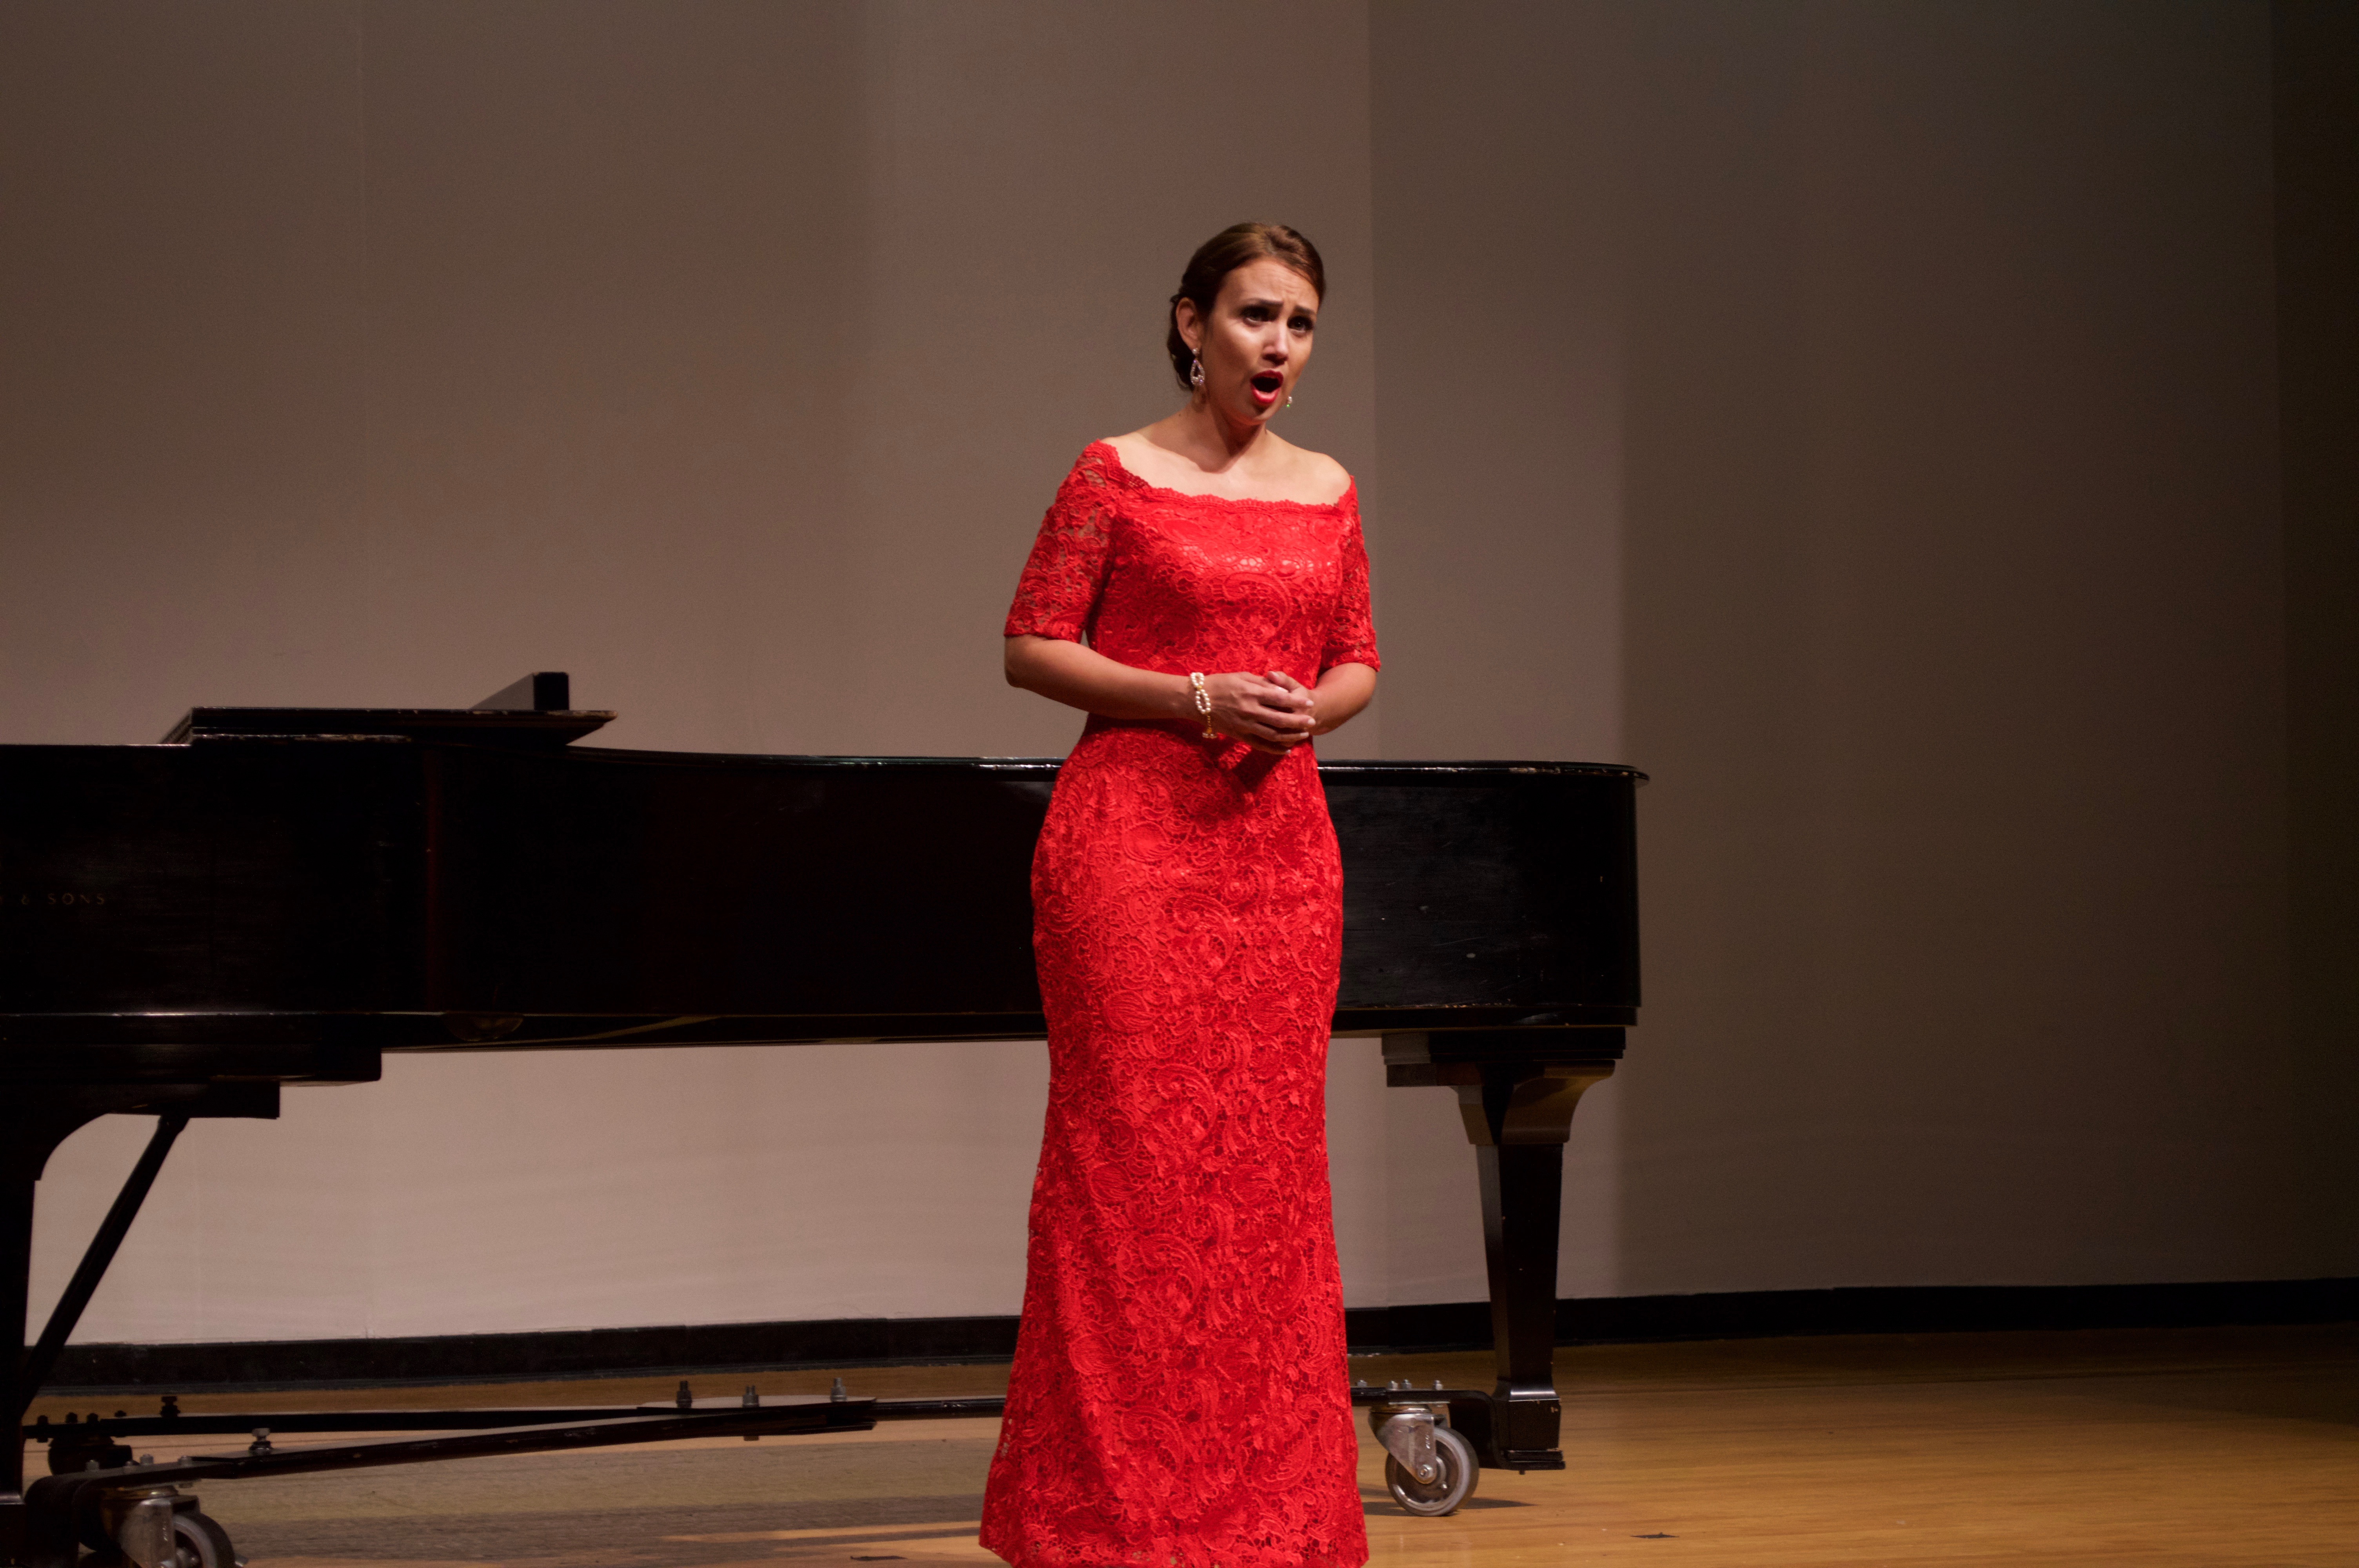 Master's student Arleen Ramirez performs a solo during her grad recital at UCF.